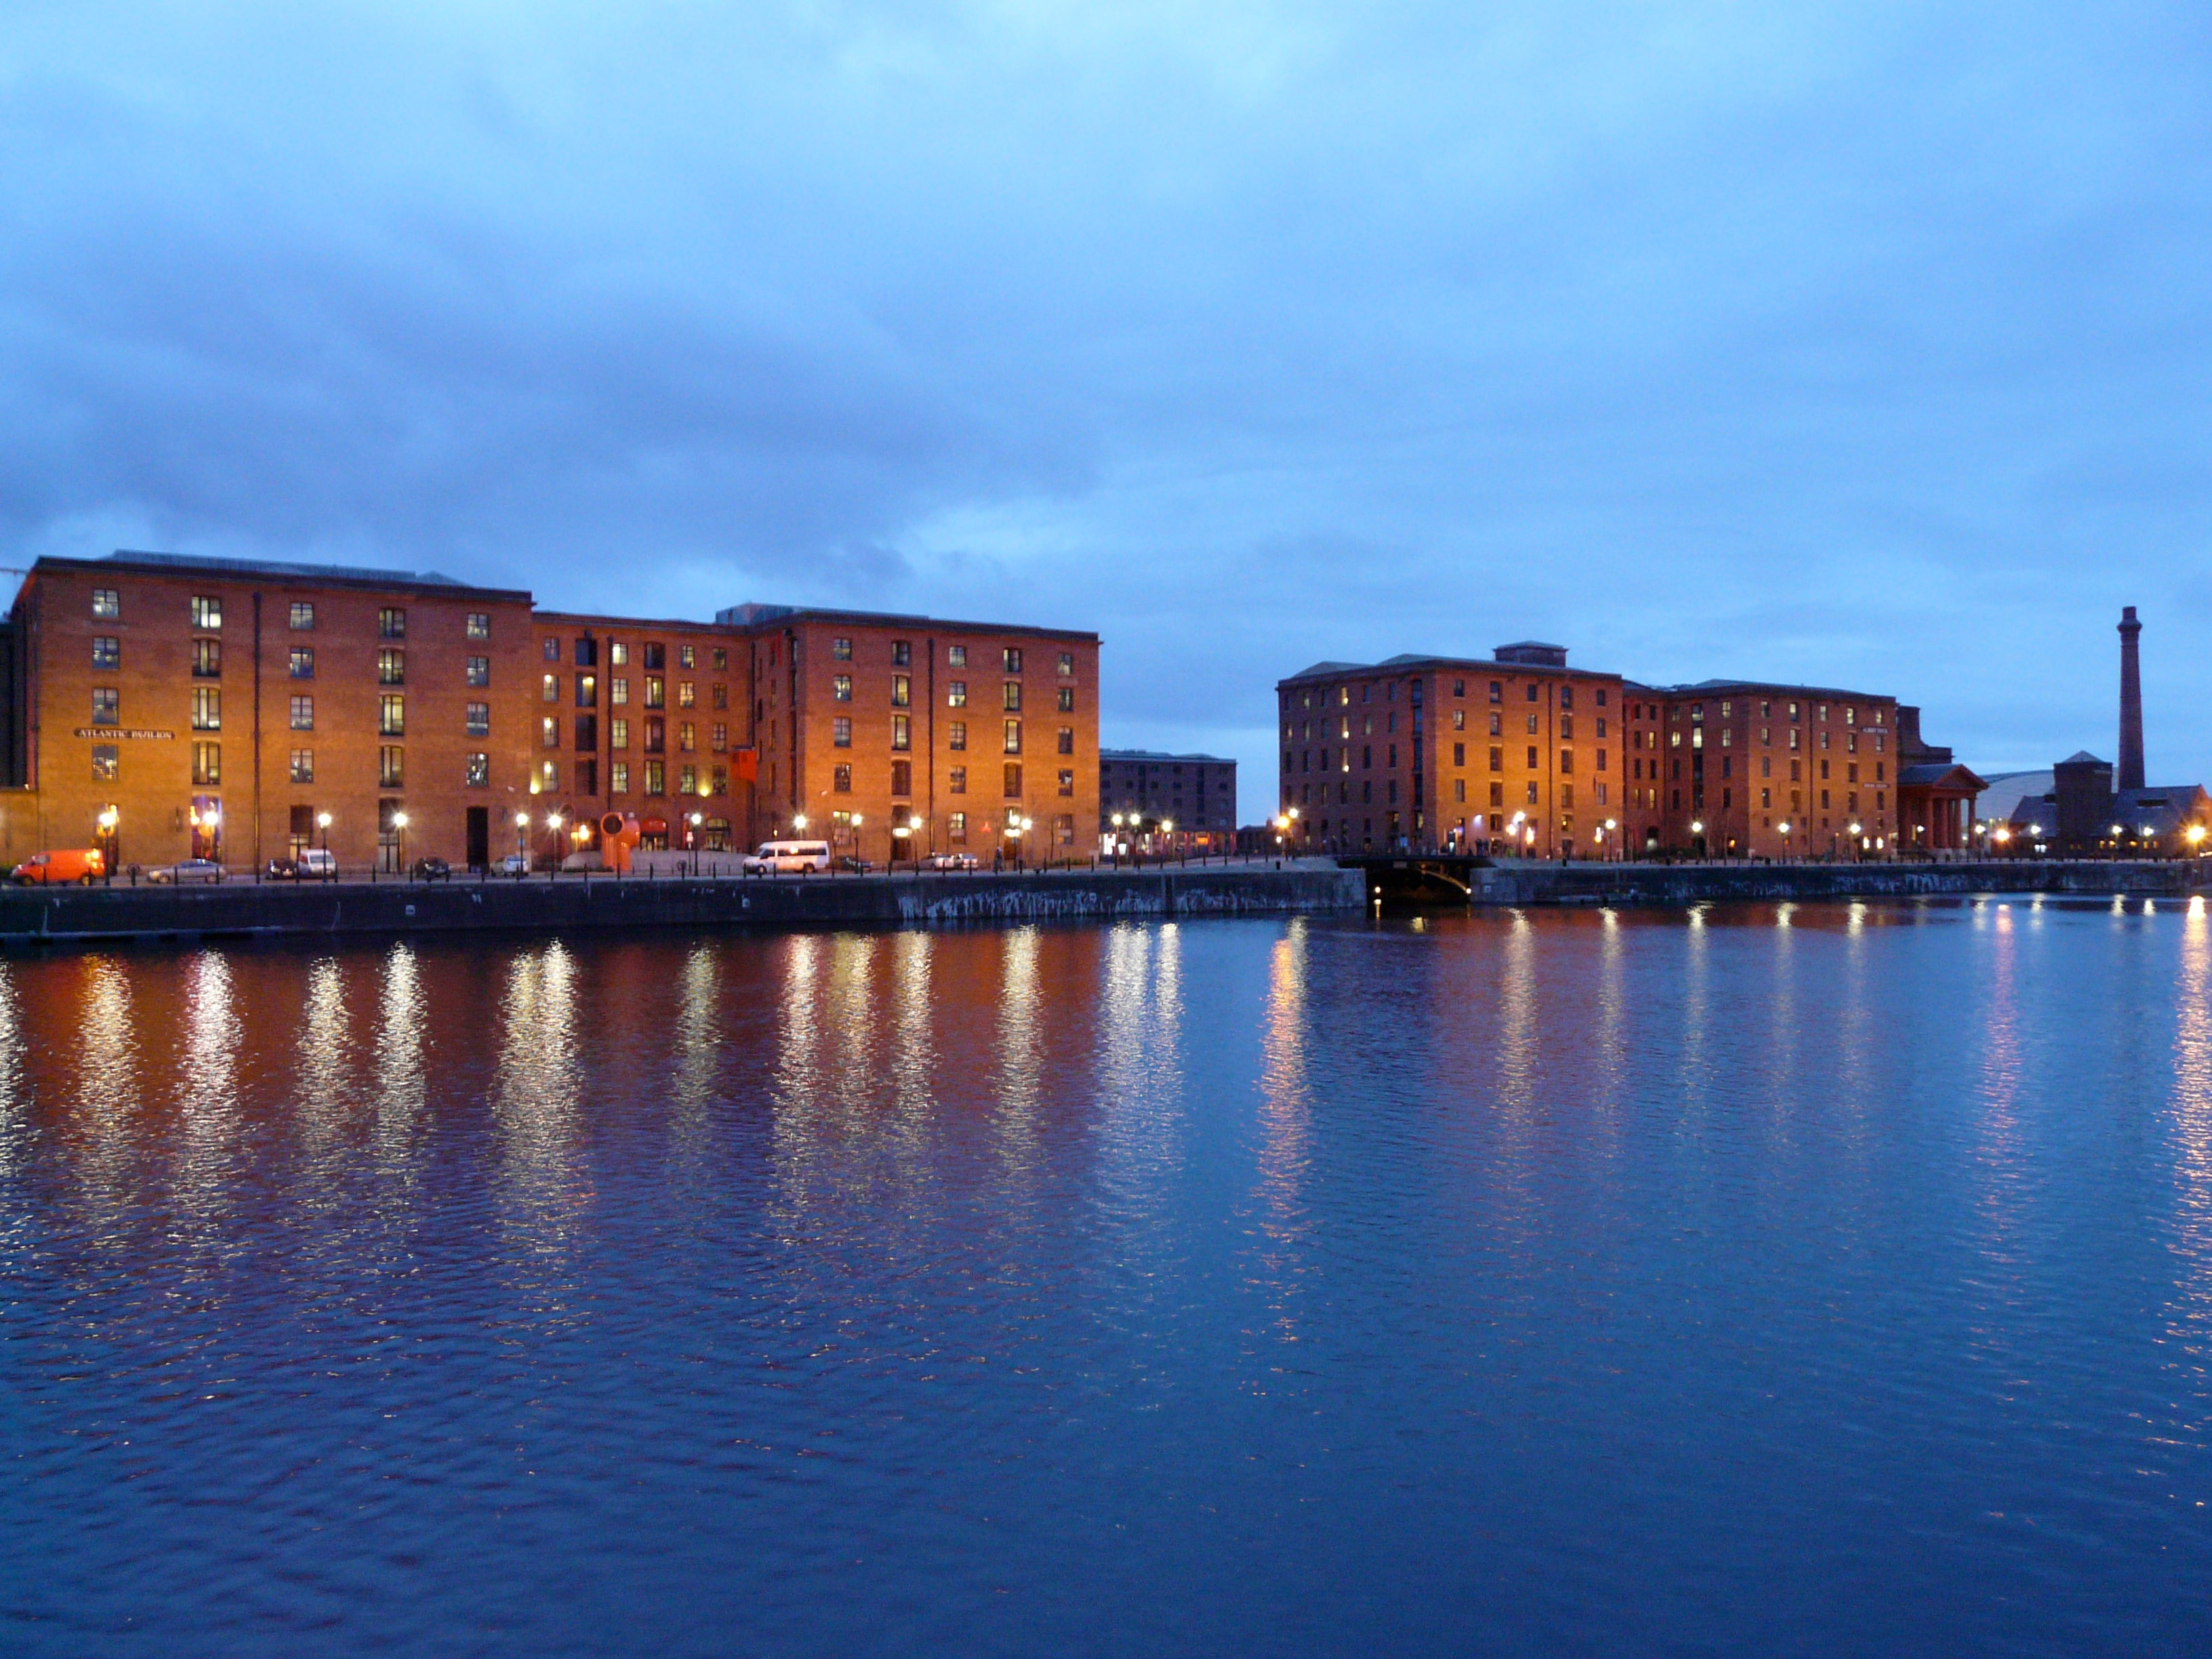 Noche en Royal Albert Dock